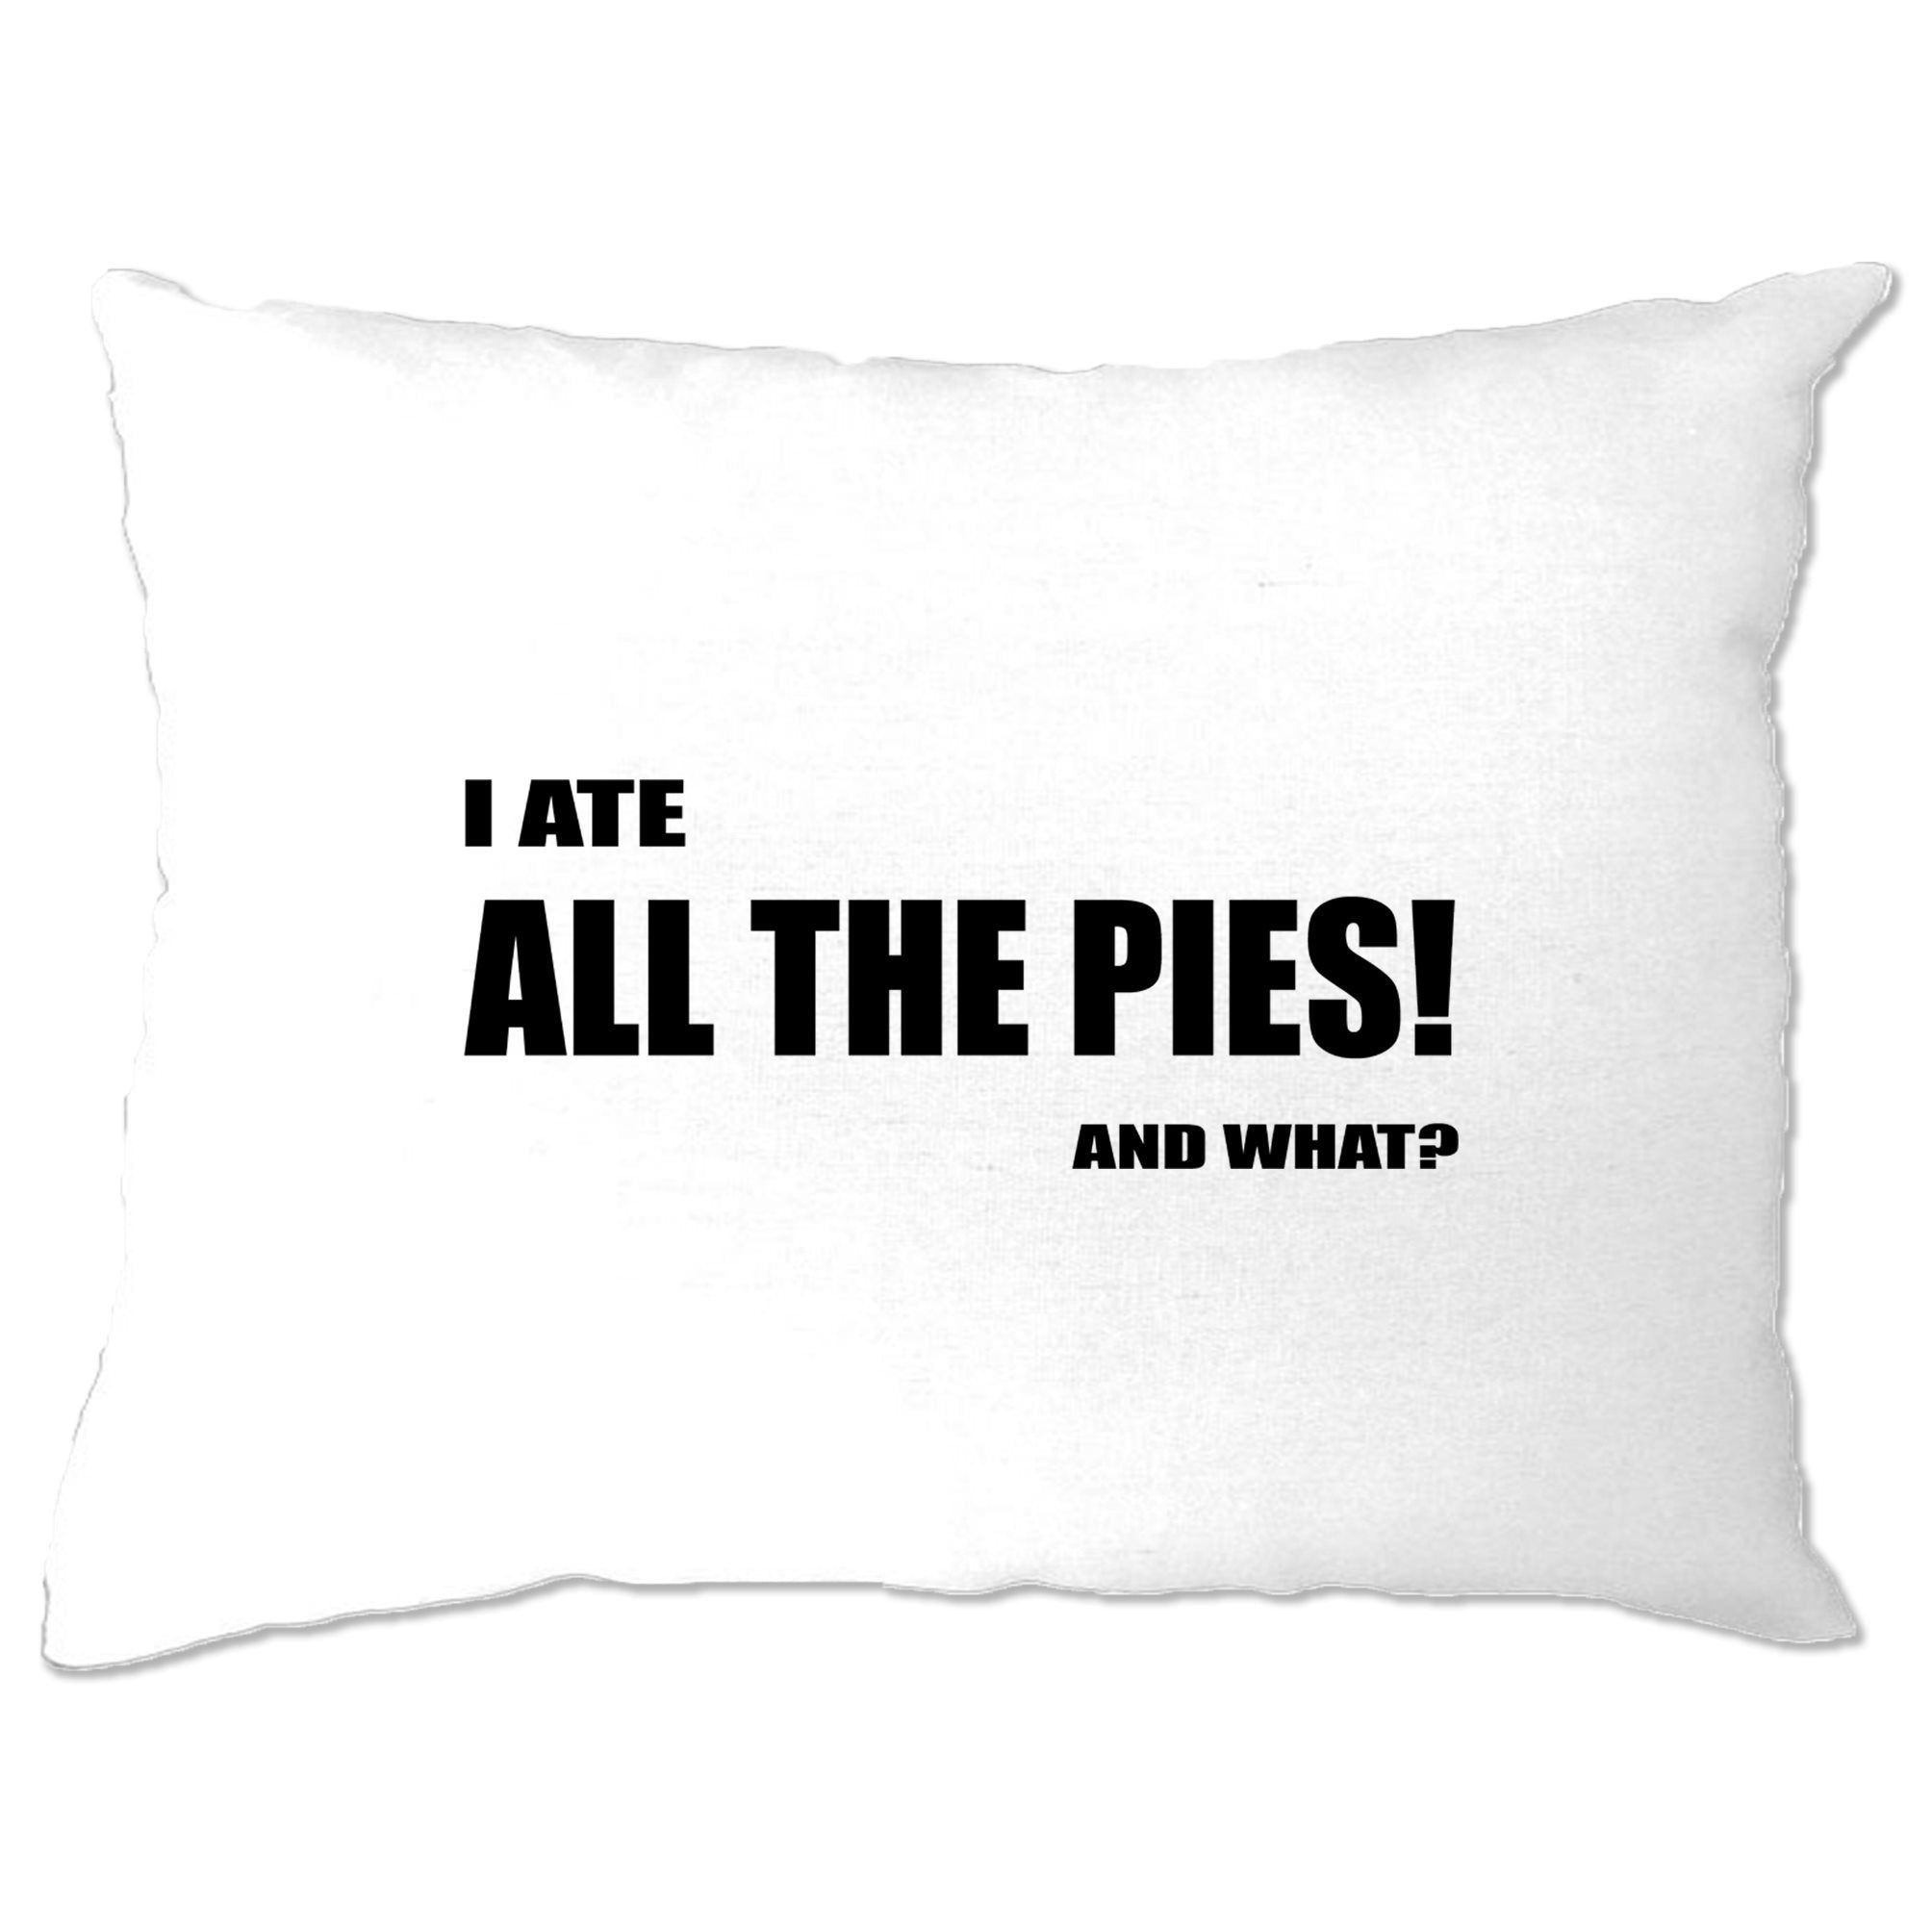 Novelty Pillow Case I Ate All The Pies, And What Slogan